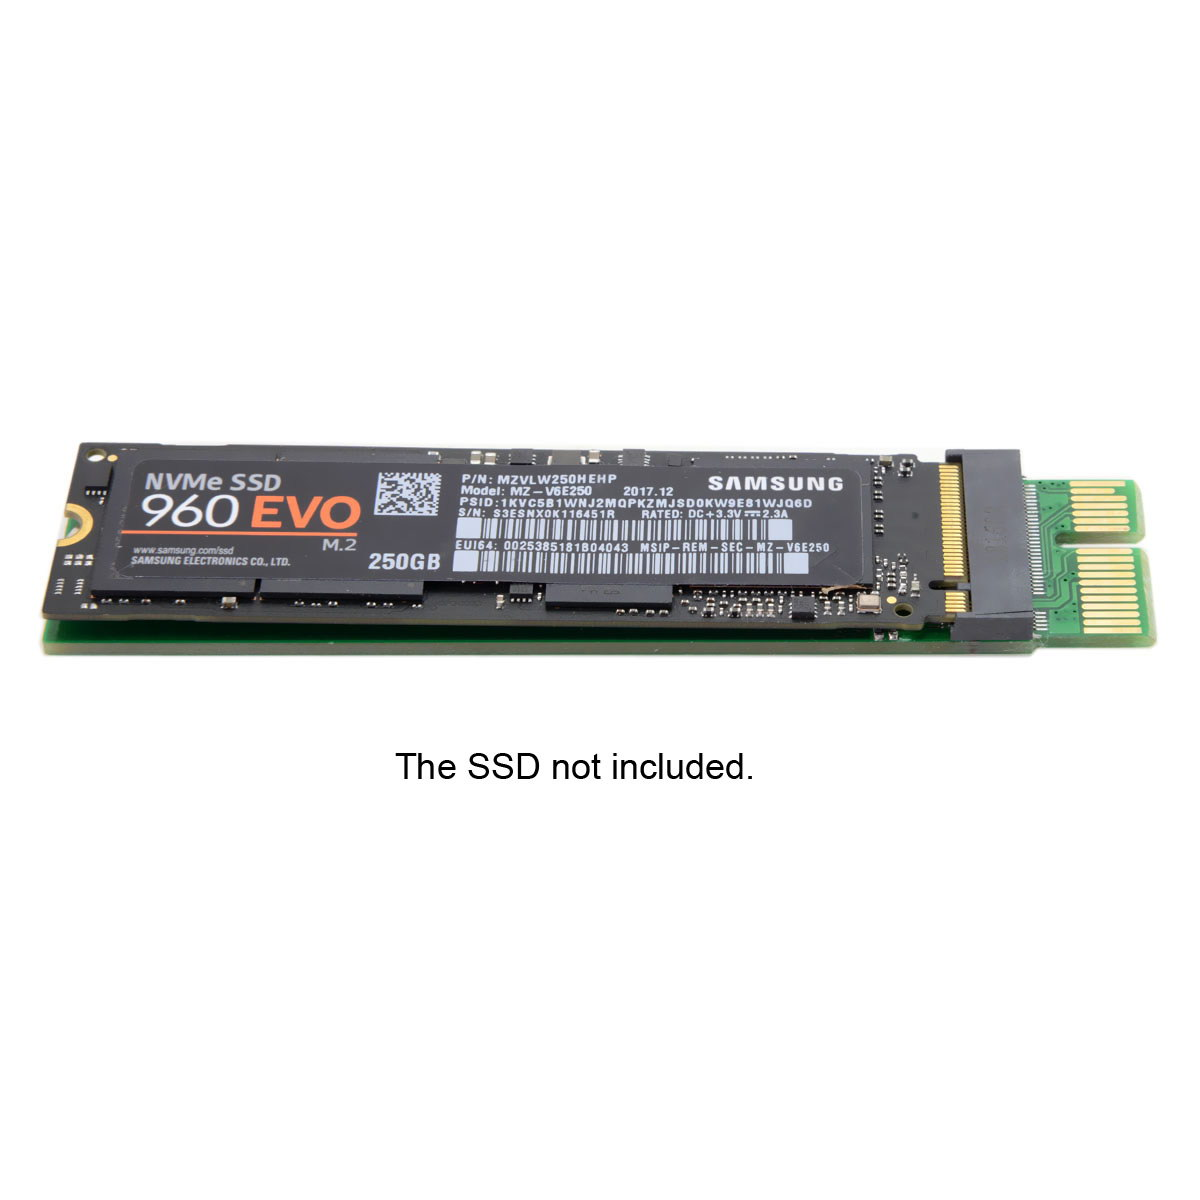 CYSM NGFF M-key M key <font><b>M.2</b></font> NVME AHCI SSD to <font><b>PCIe</b></font> PCI-E 3.0 1x <font><b>x1</b></font> Vertical Adapter for XP941 SM951 PM951 960 EVO SSD image